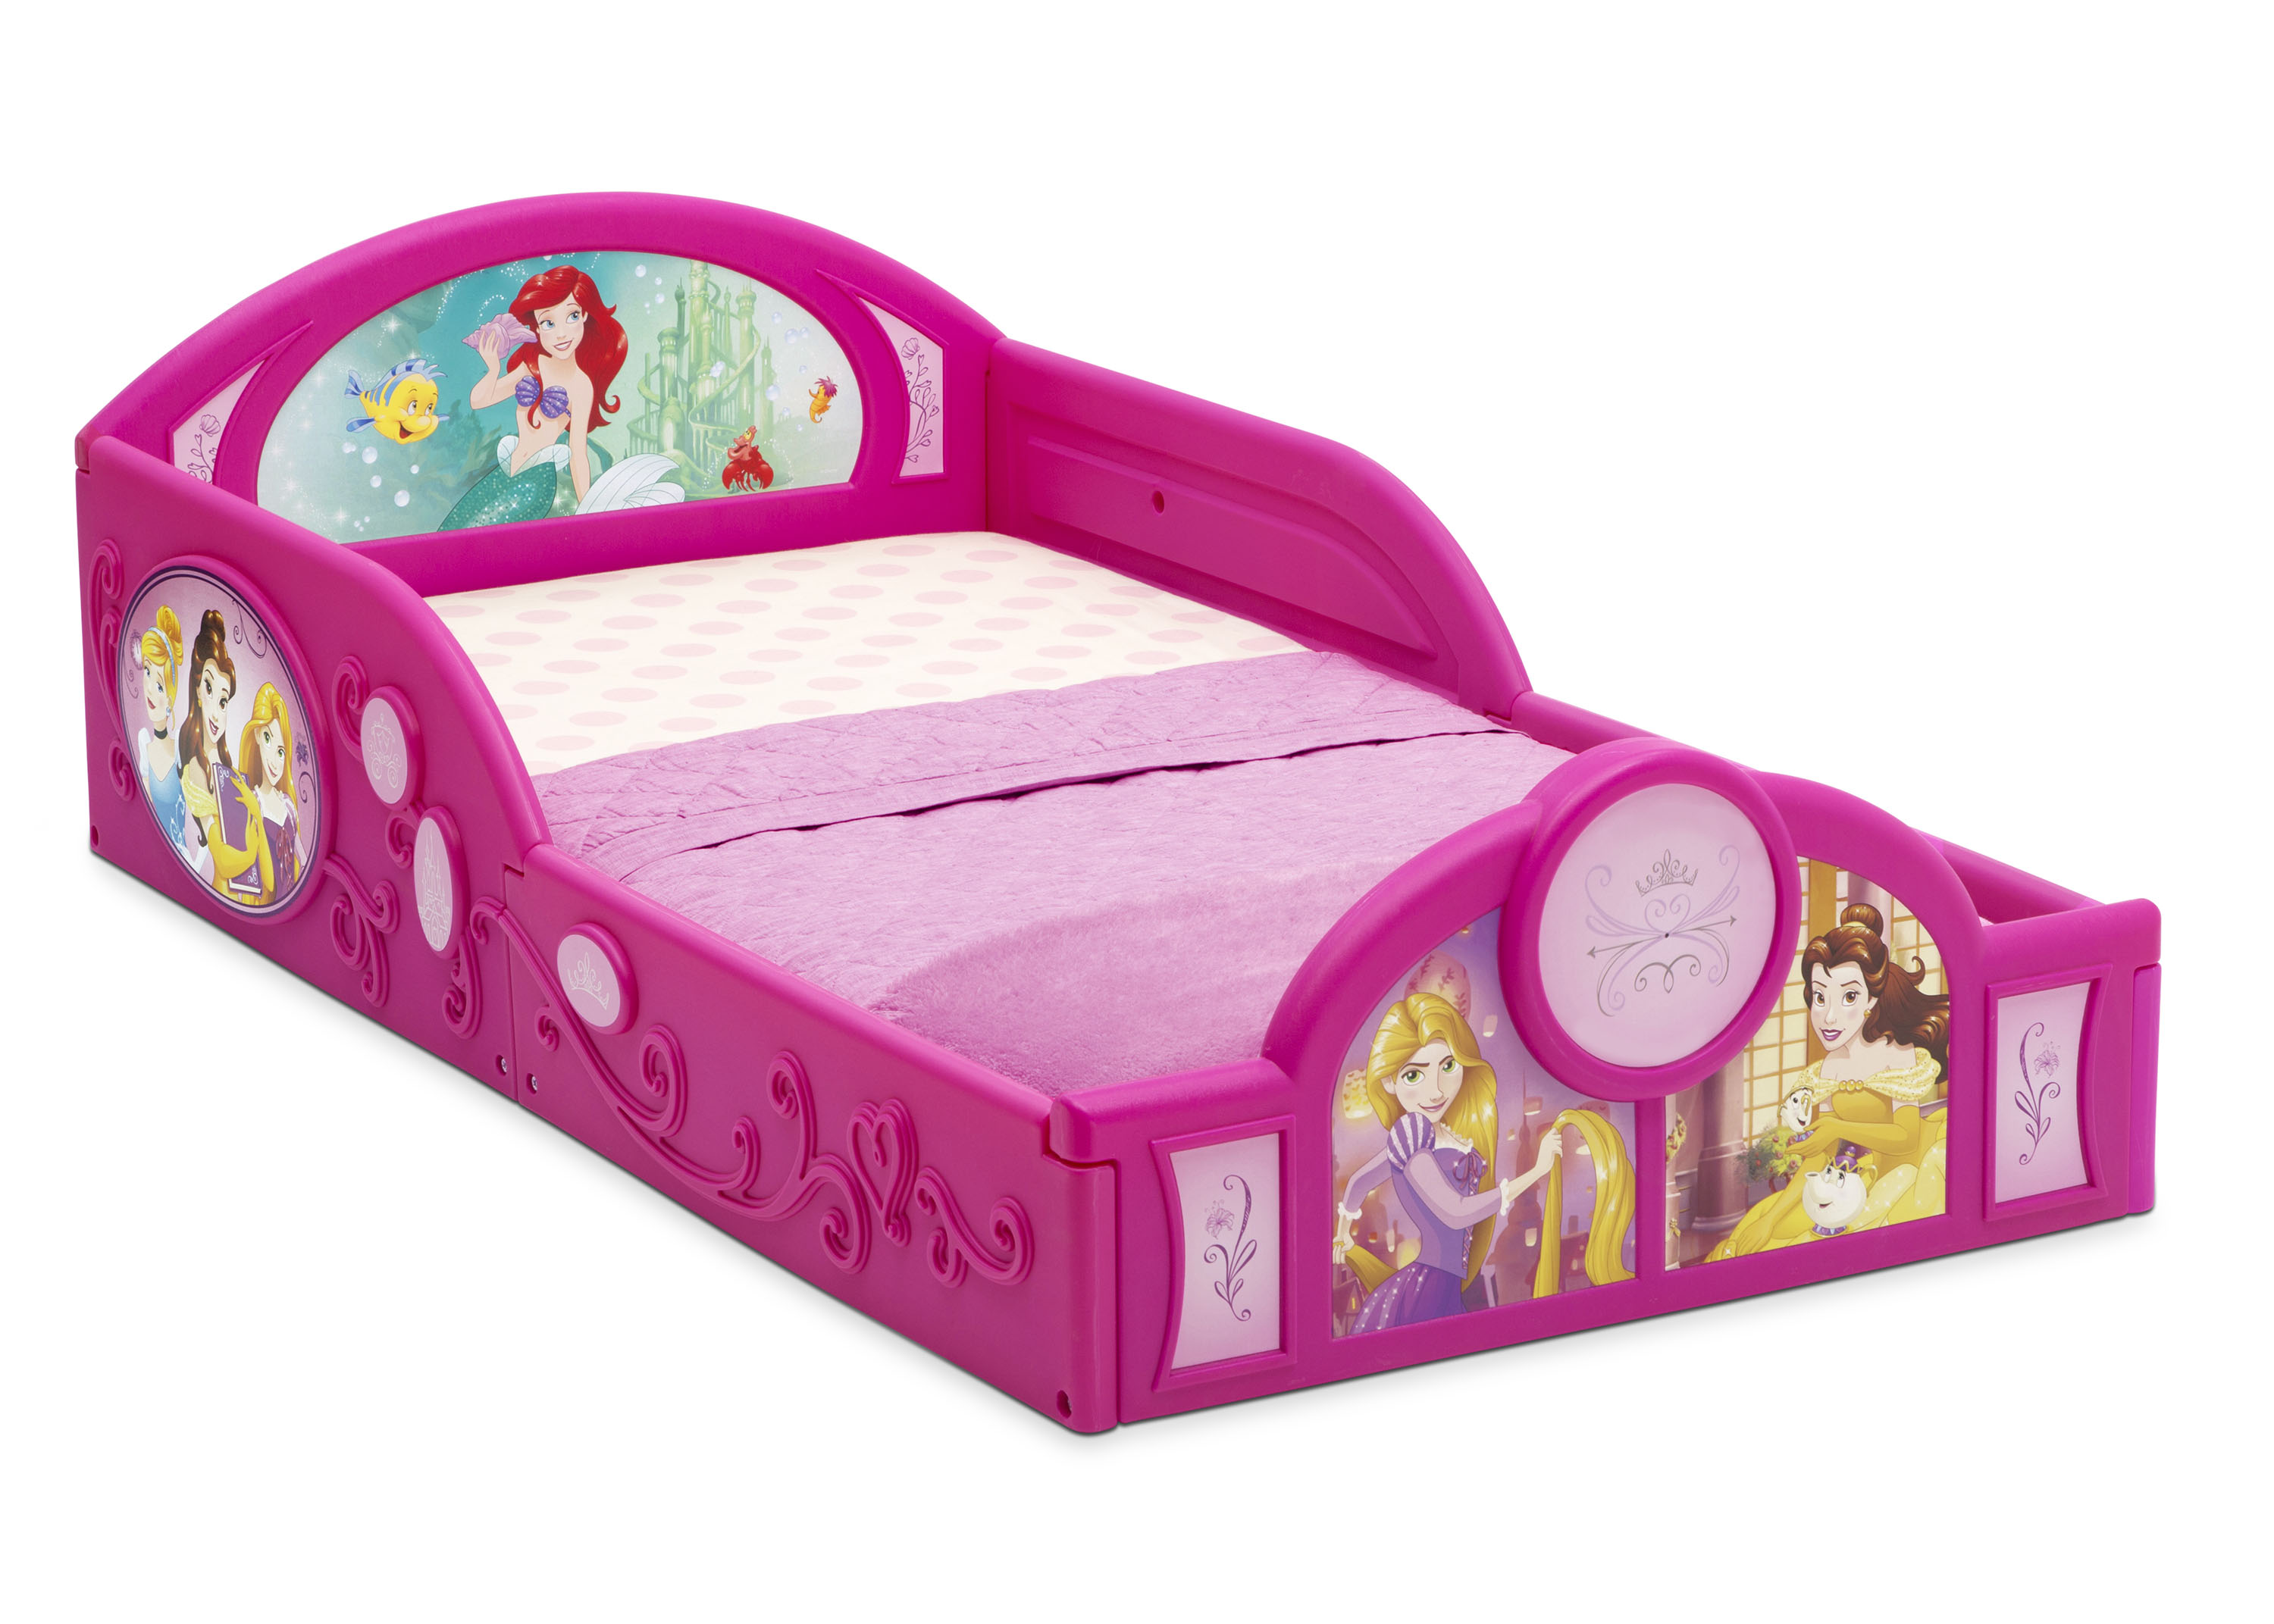 Disney Princess Deluxe Toddler Bed With Attached Guardrails